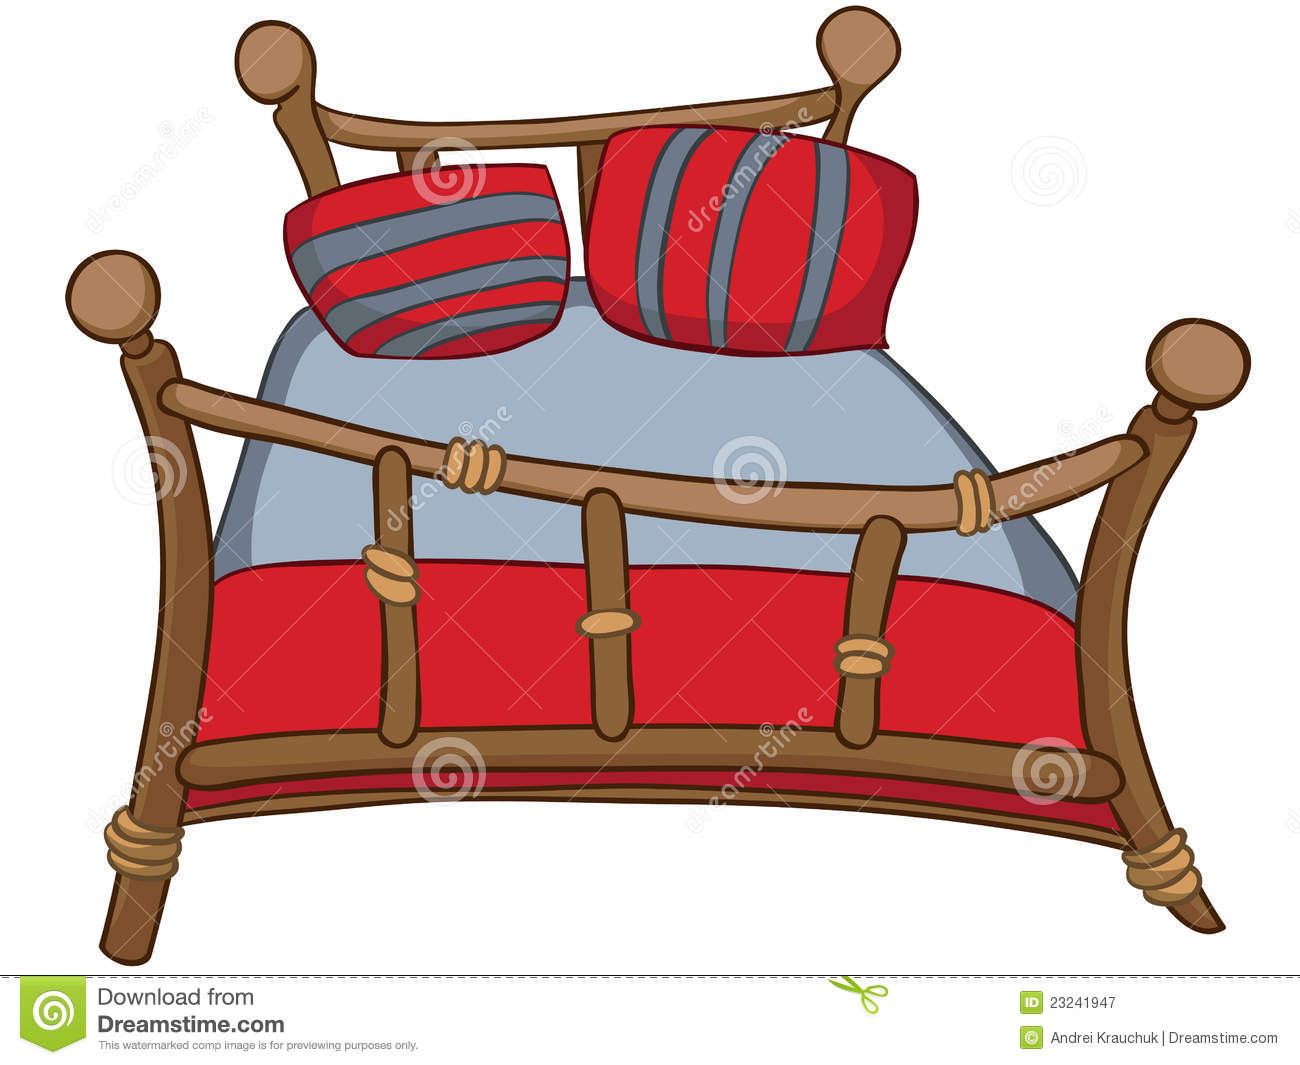 cartoon home furniture bed stock illustration. Black Bedroom Furniture Sets. Home Design Ideas